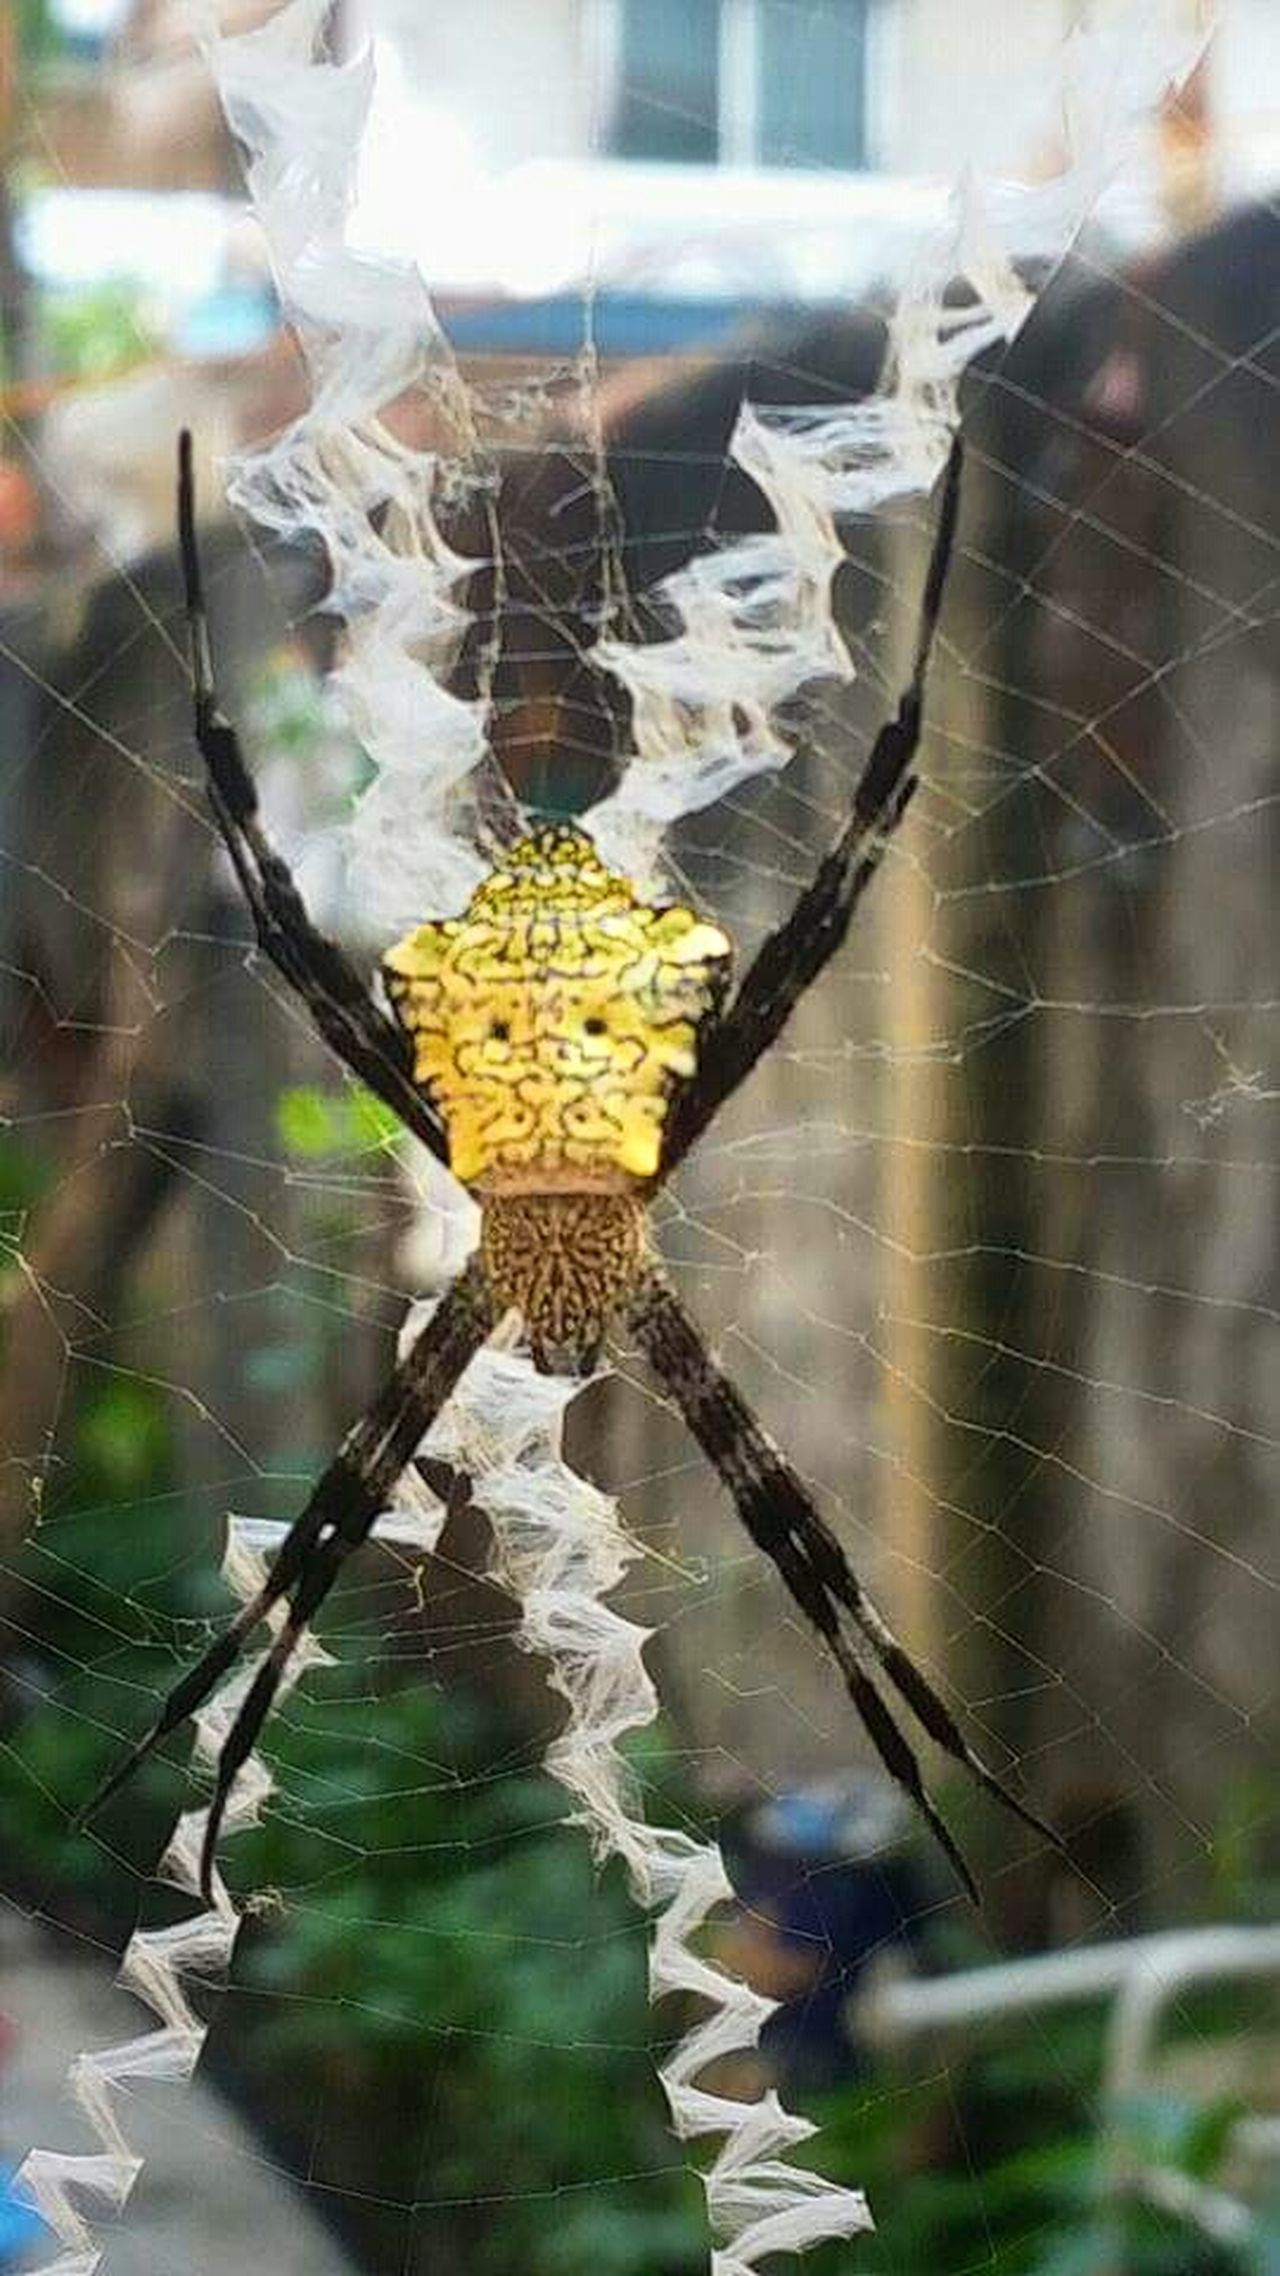 Spinne Spinnennetz Arachnid Spider Spiderweb X On The Web Insect Insect Photography Bug Bugs Life Macro Photography